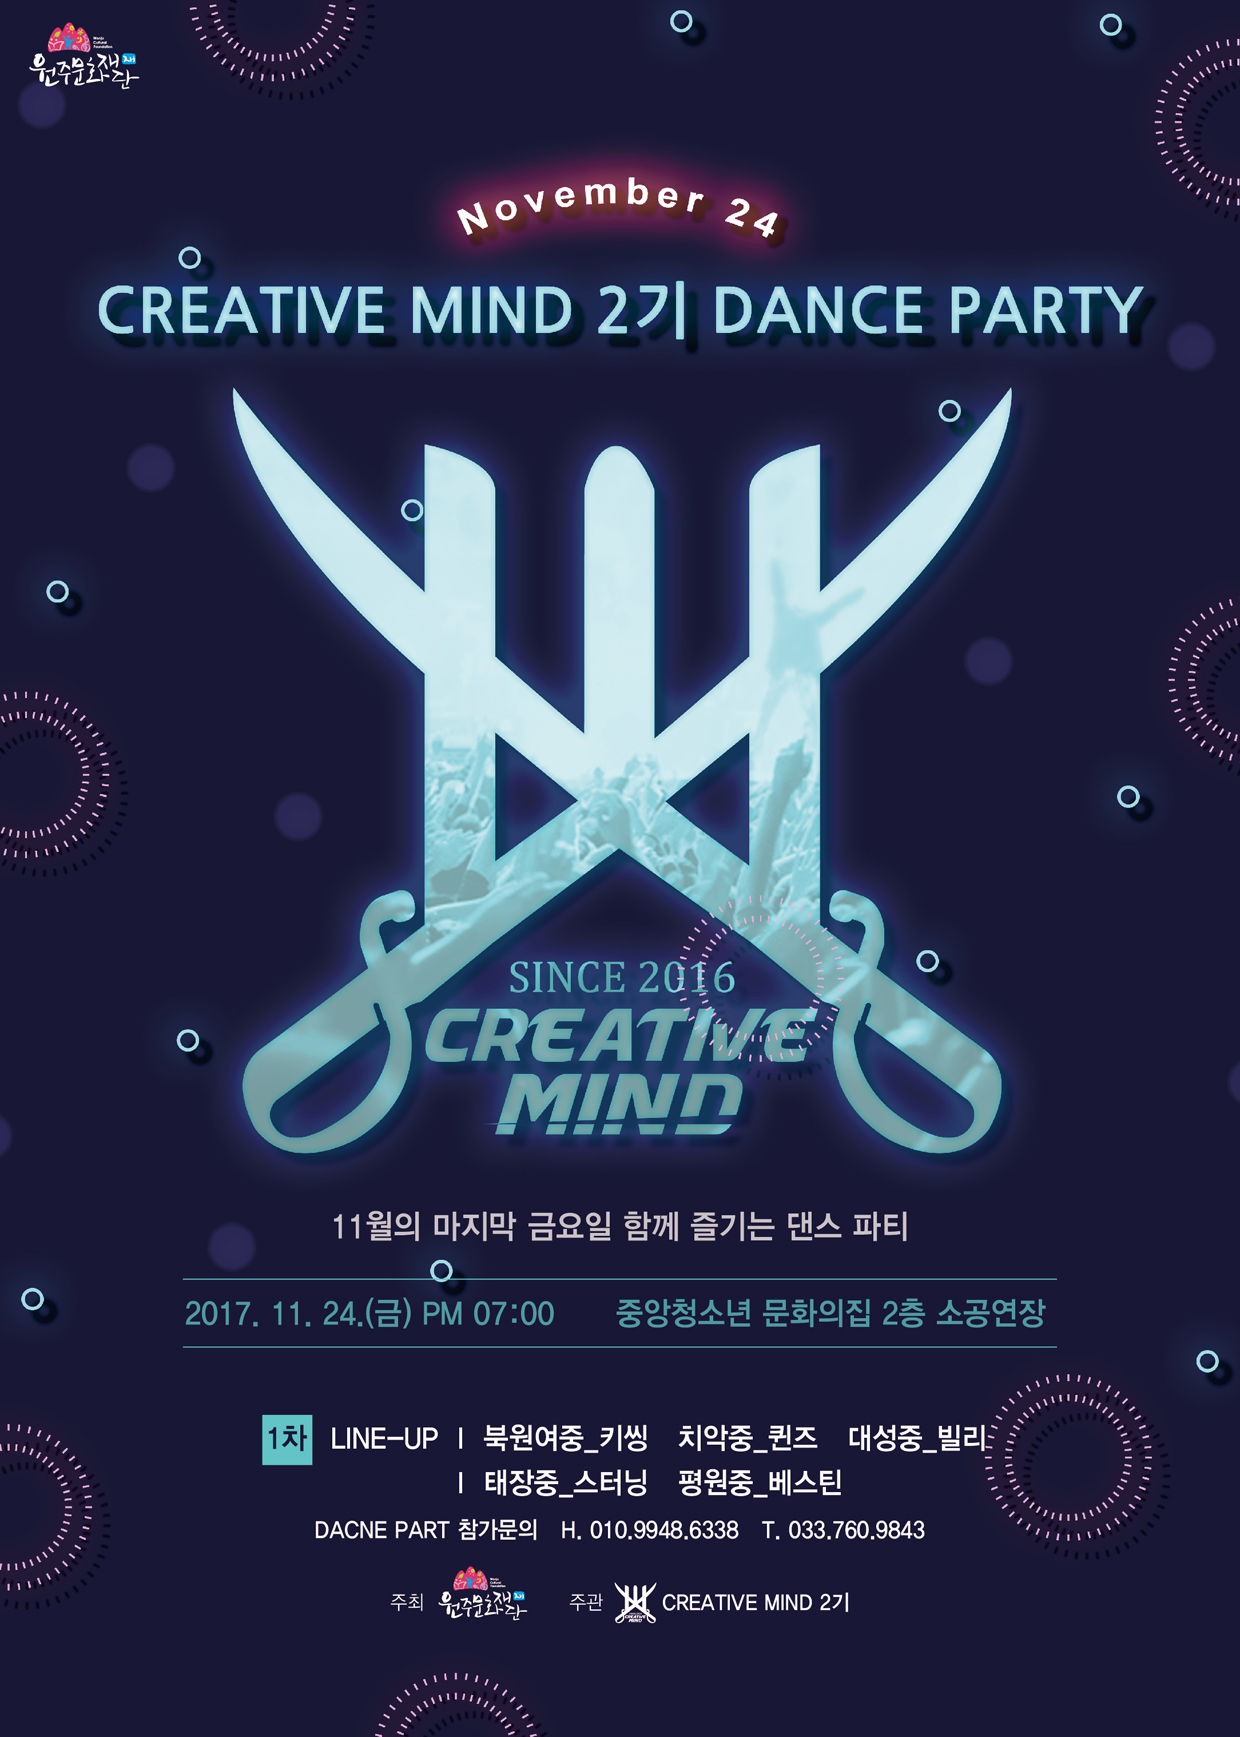 CREATIVE MIND 2기 DANCE PARTY